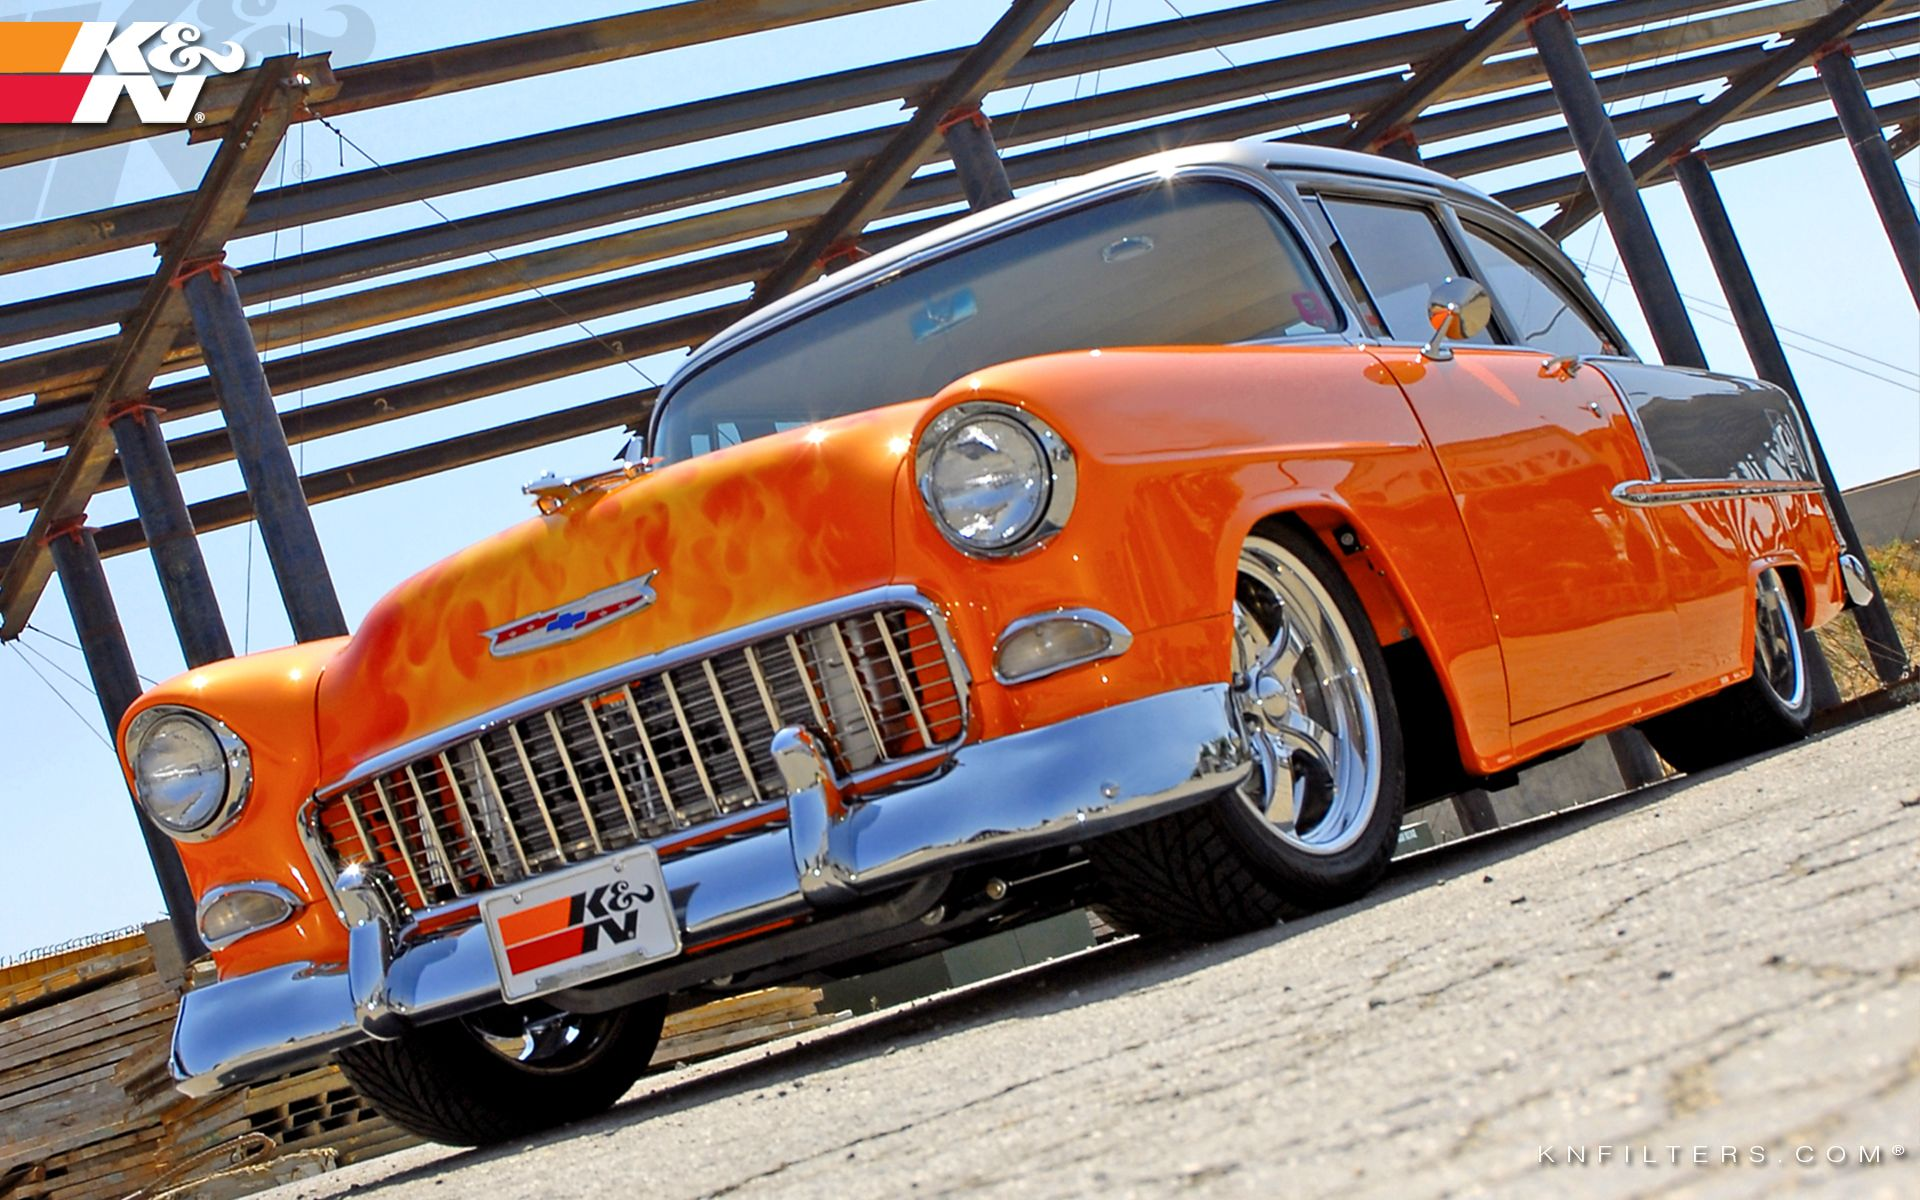 55 Chevy | Cool Classic Cars | Pinterest | Cars, Chevrolet and Hot cars